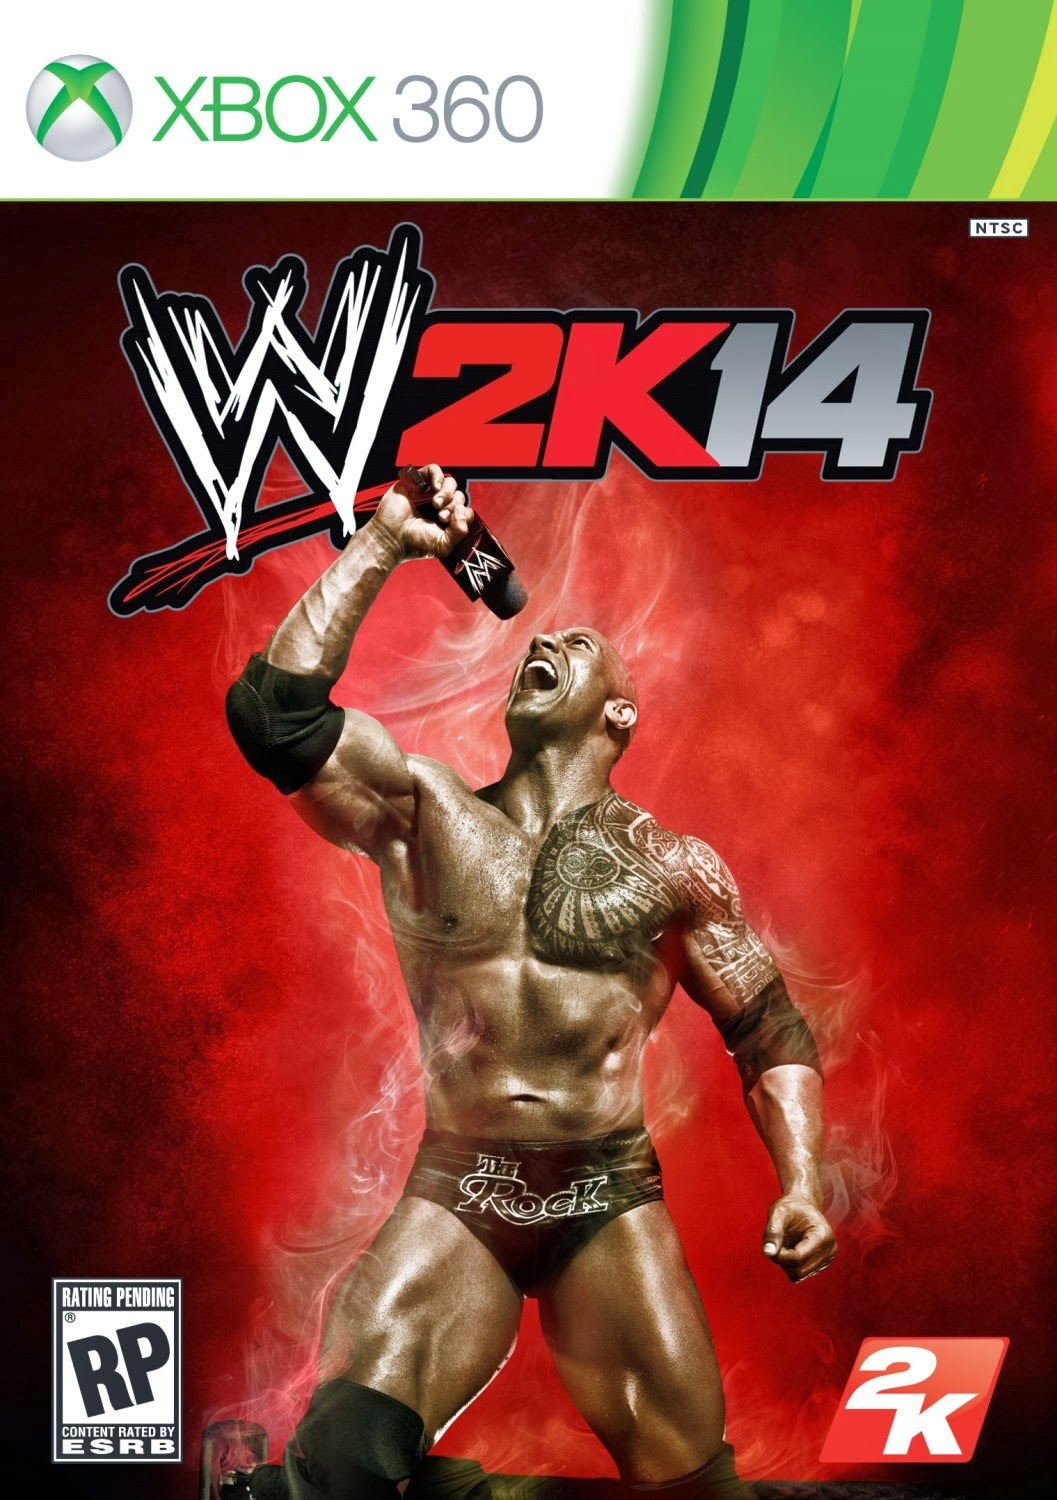 Download - Jogo WWE 2K14 XBOX360-SPARE (2013)